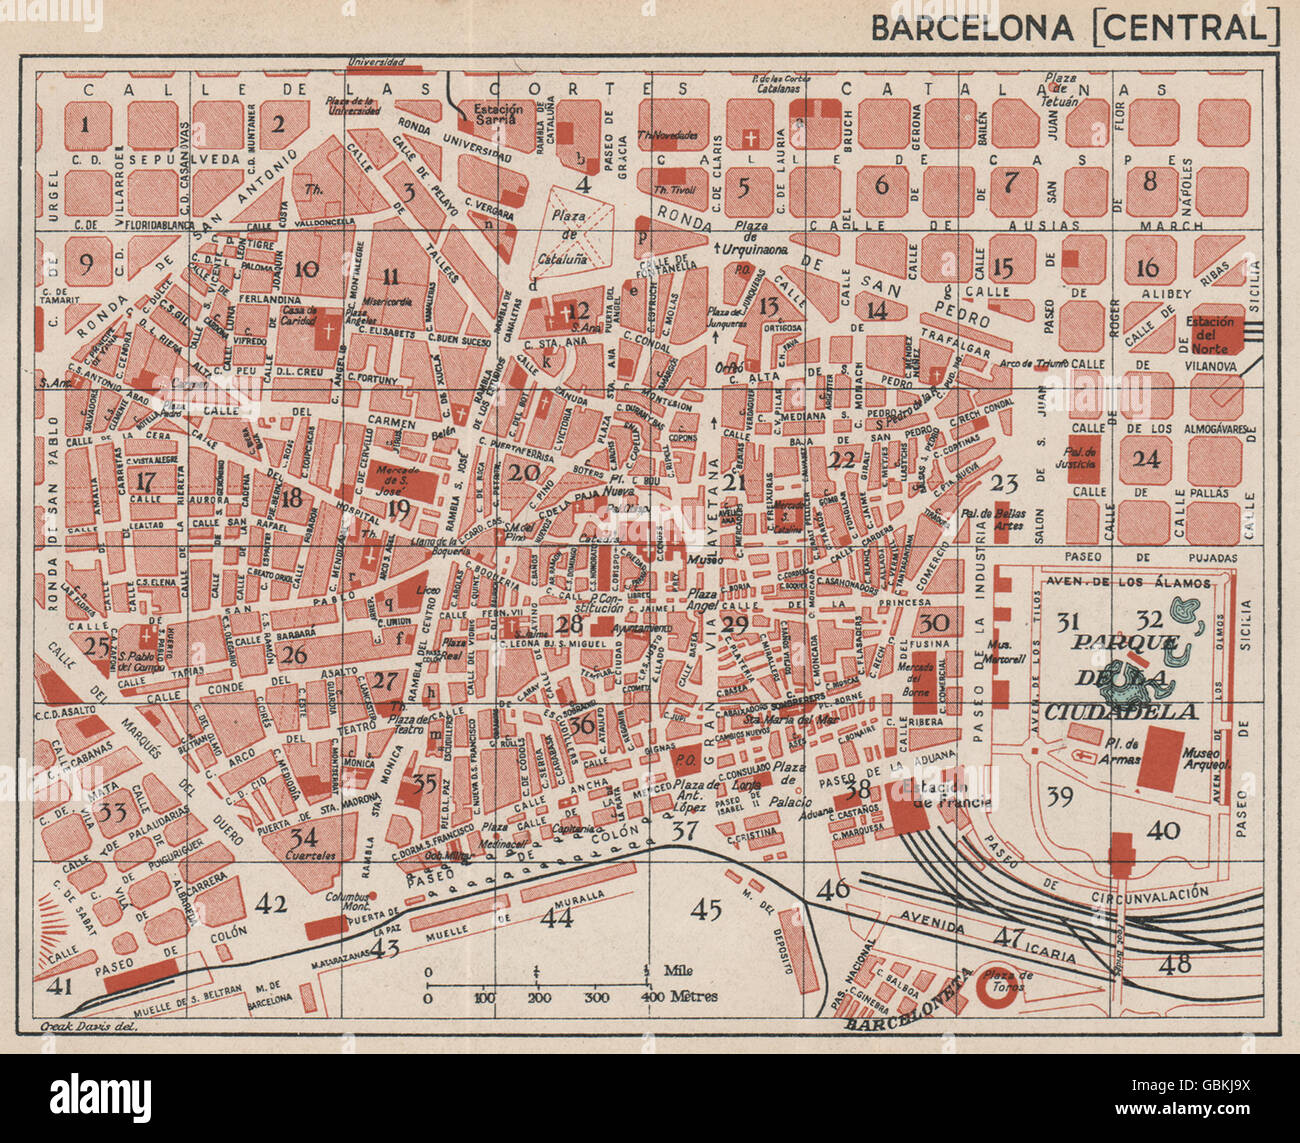 Map Of Central Spain.Barcelona Central Vintage Town City Map Plan Spain 1930 Stock